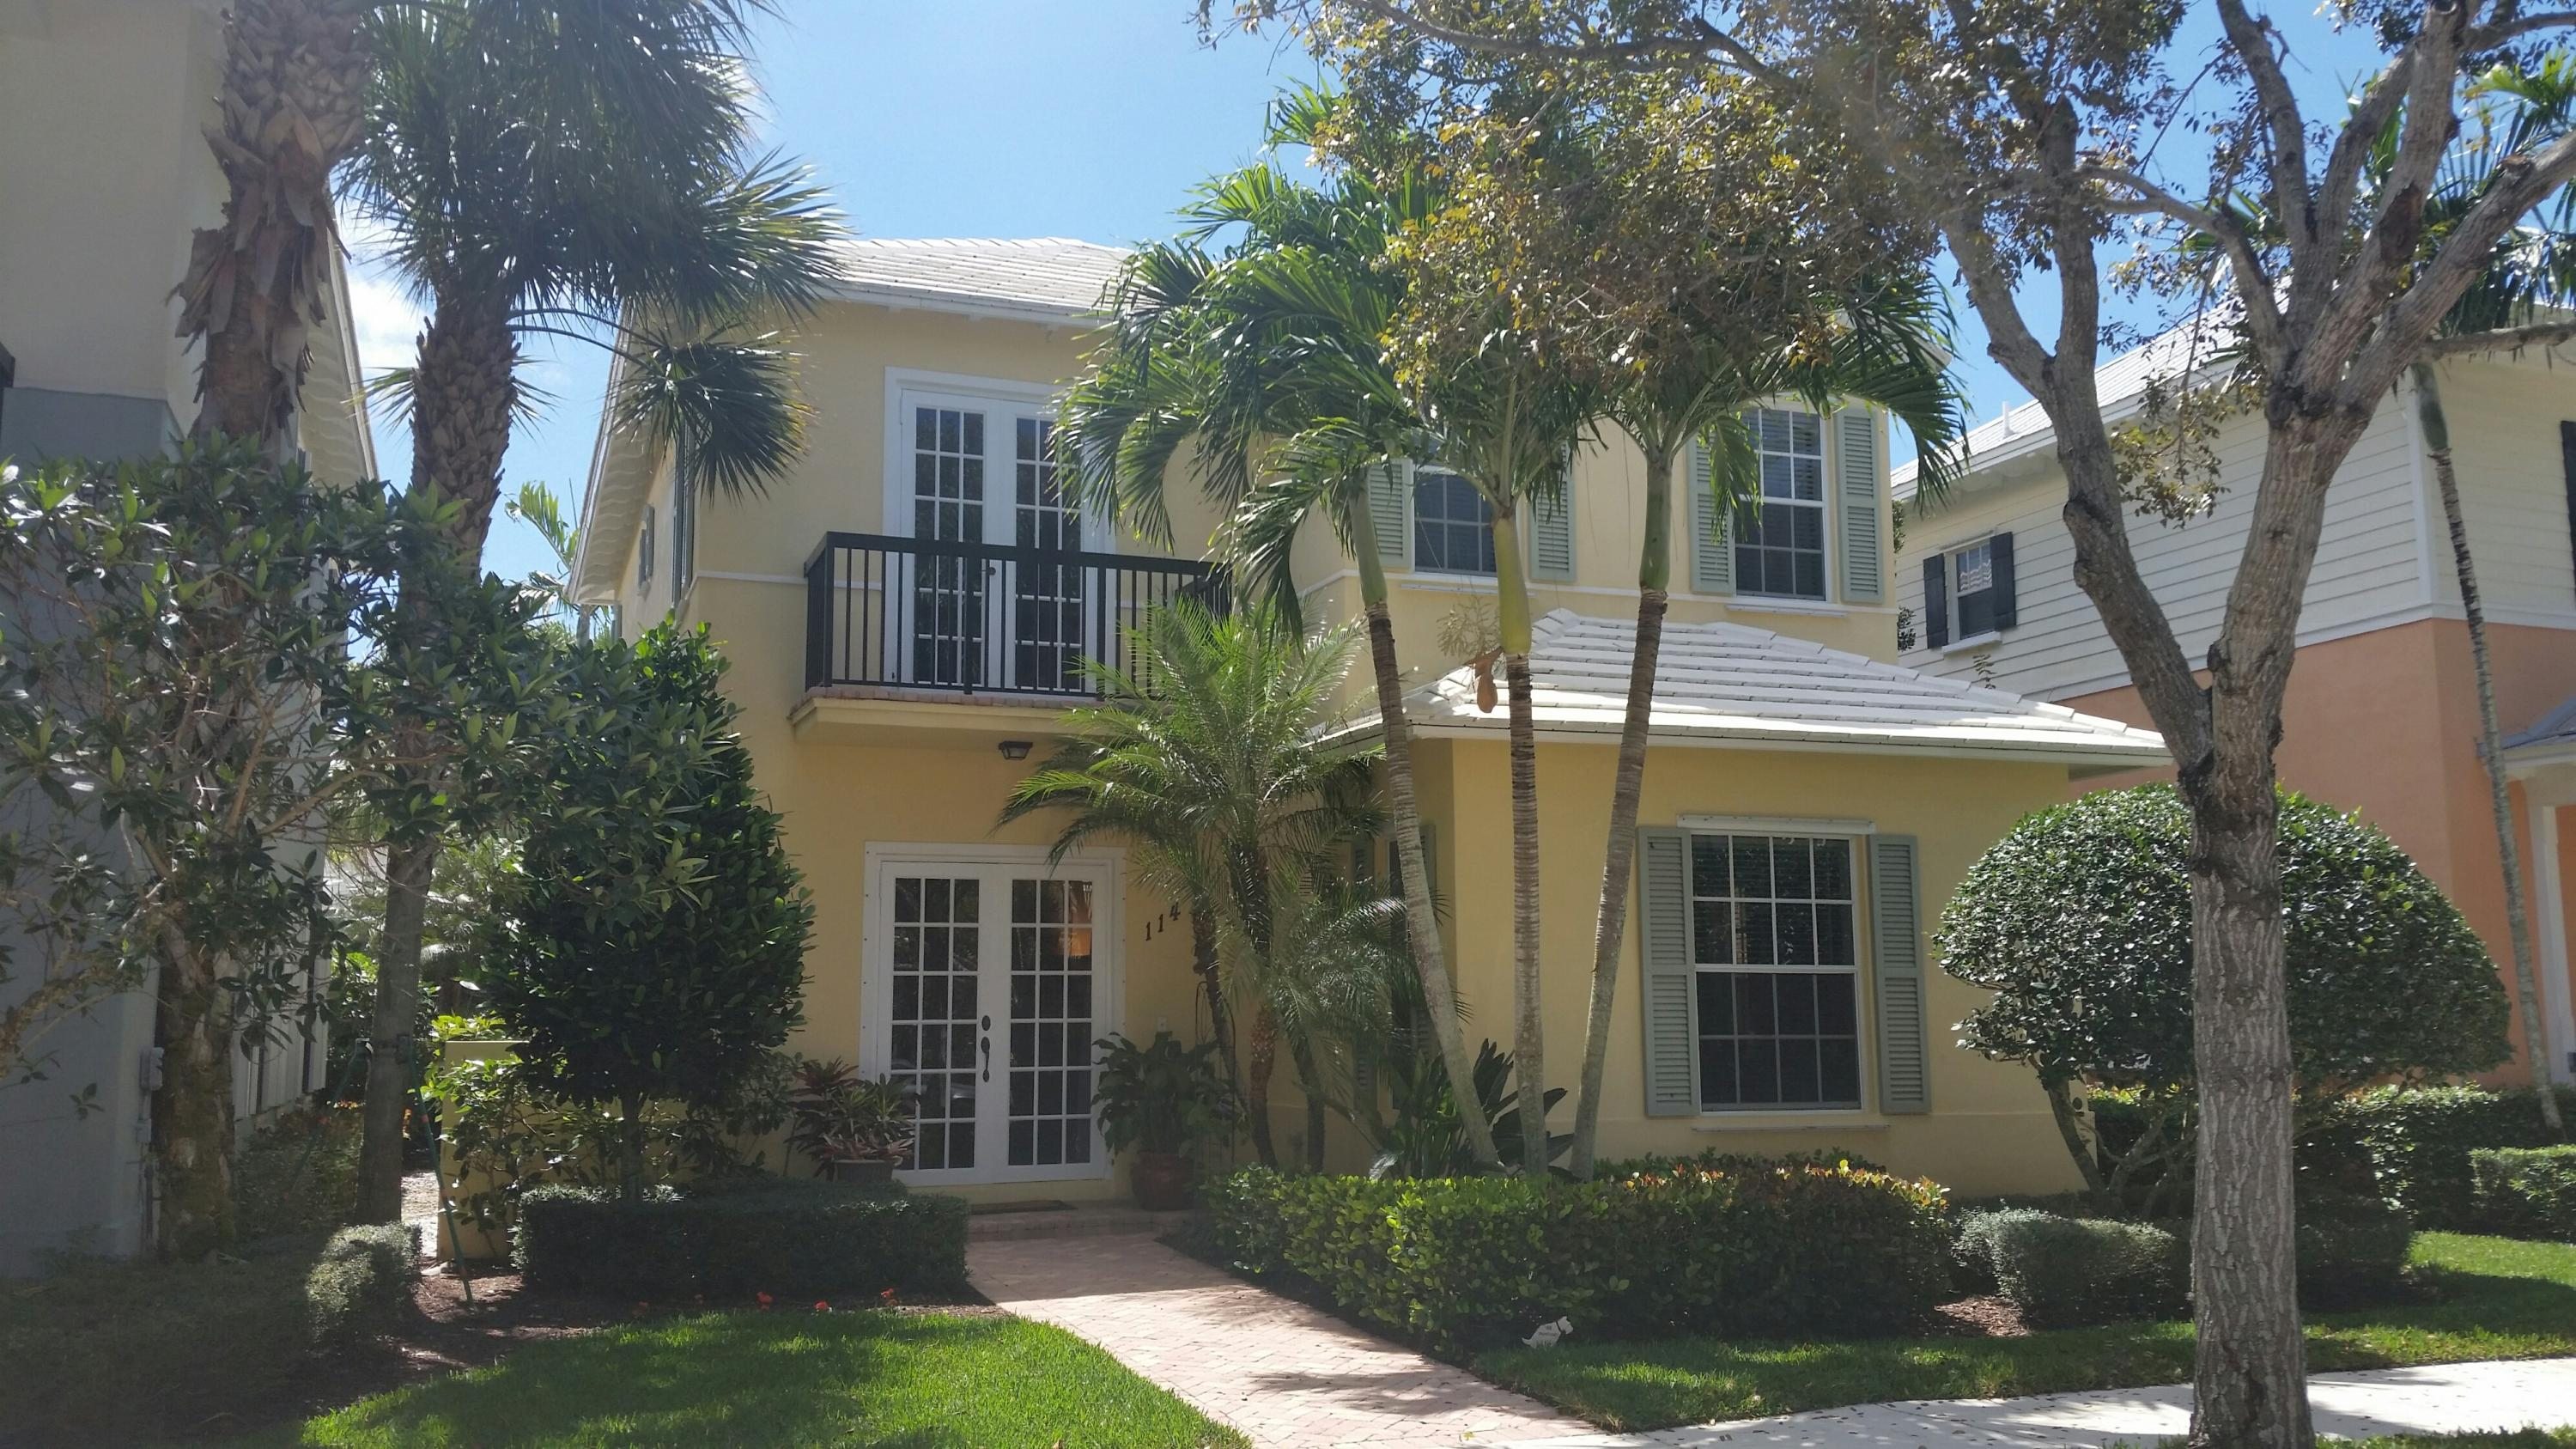 114 Inkberry Drive, Jupiter, Florida 33458, 4 Bedrooms Bedrooms, ,3.1 BathroomsBathrooms,A,Single family,Inkberry,RX-10614706